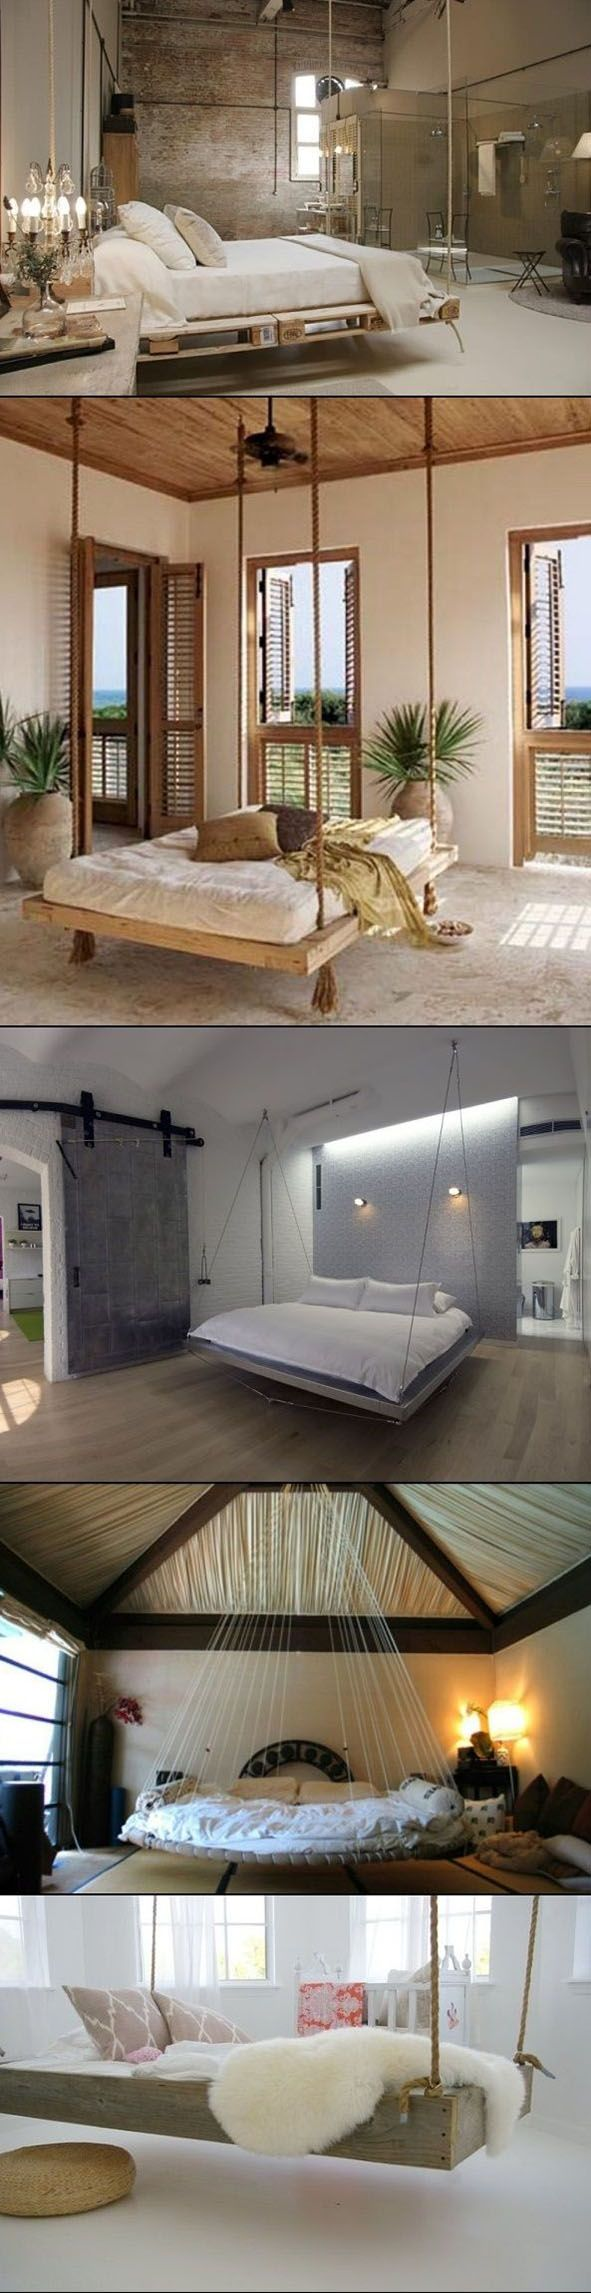 best home images on pinterest home ideas apartments and